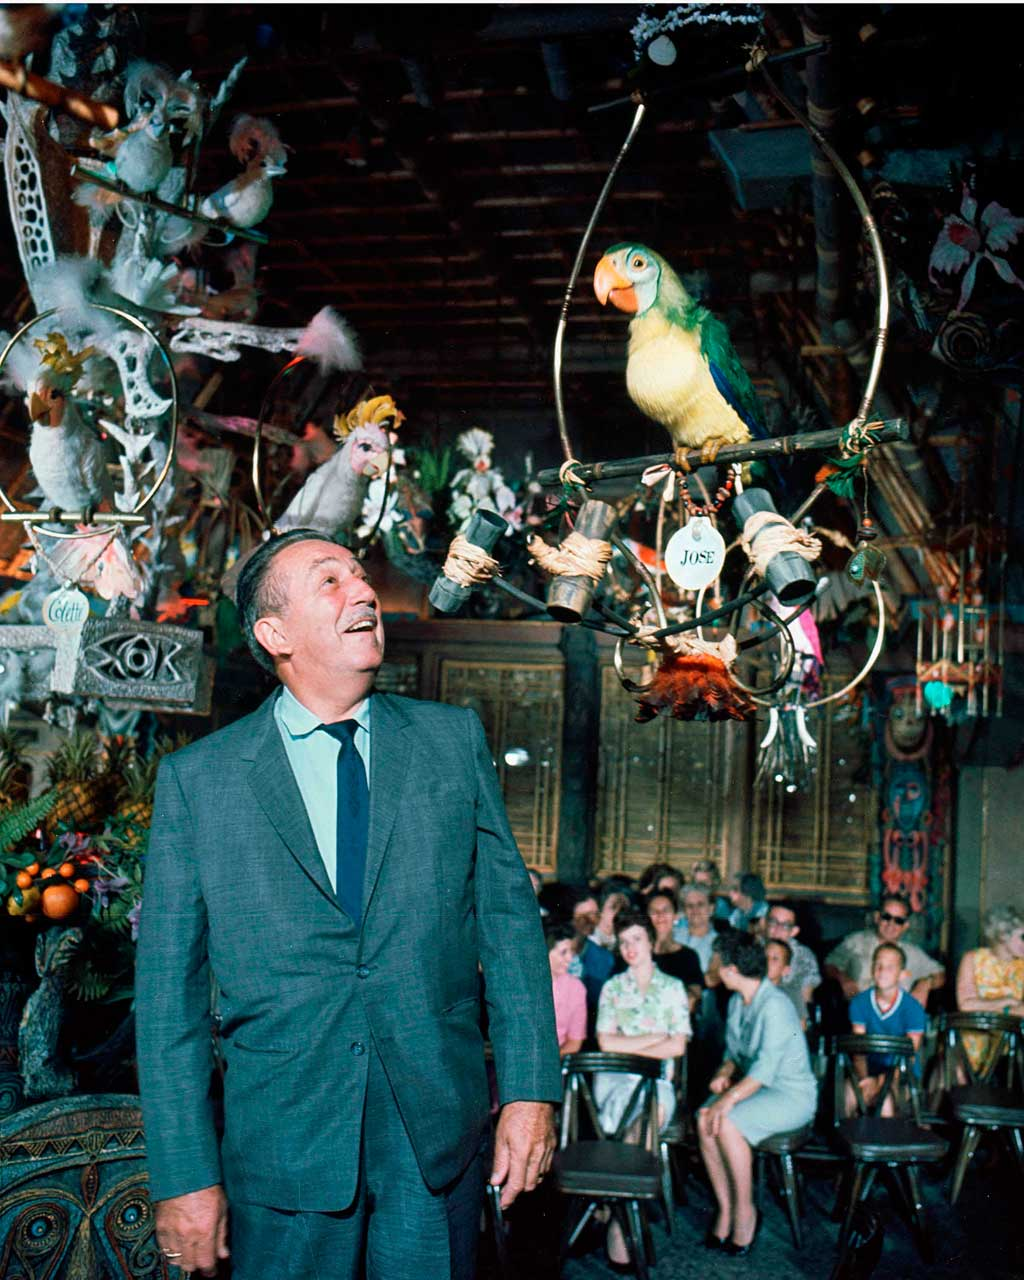 WALT DISNEY AT THE ENCHANTED TIKI ROOM (1963) -– The first attraction to feature sophisticated Audio-Animatronics figures opened June 23, 1963. The show features more than 200 birds, tikis and flowers. (Disneyland Resort)